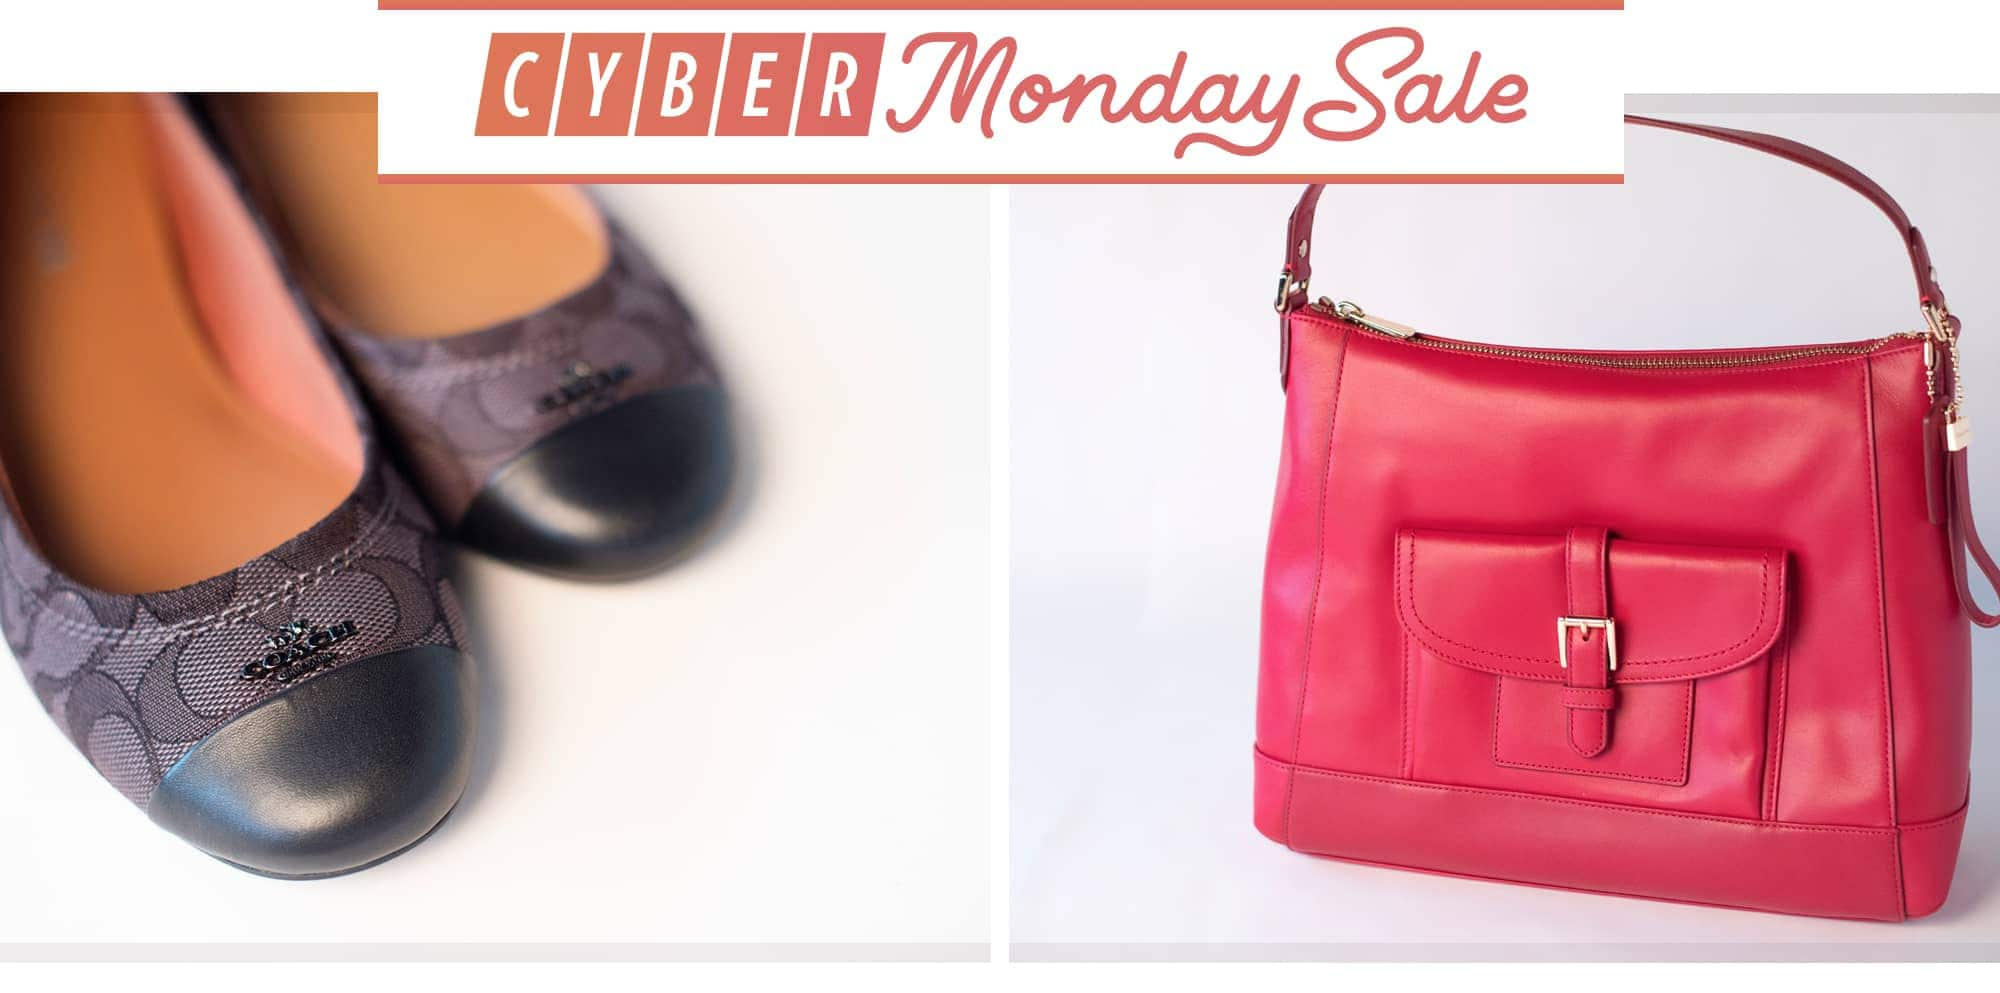 """Extra 10% off at 6pm.com with code """"CYBERMON10"""" - Today only (expires 11/27)"""